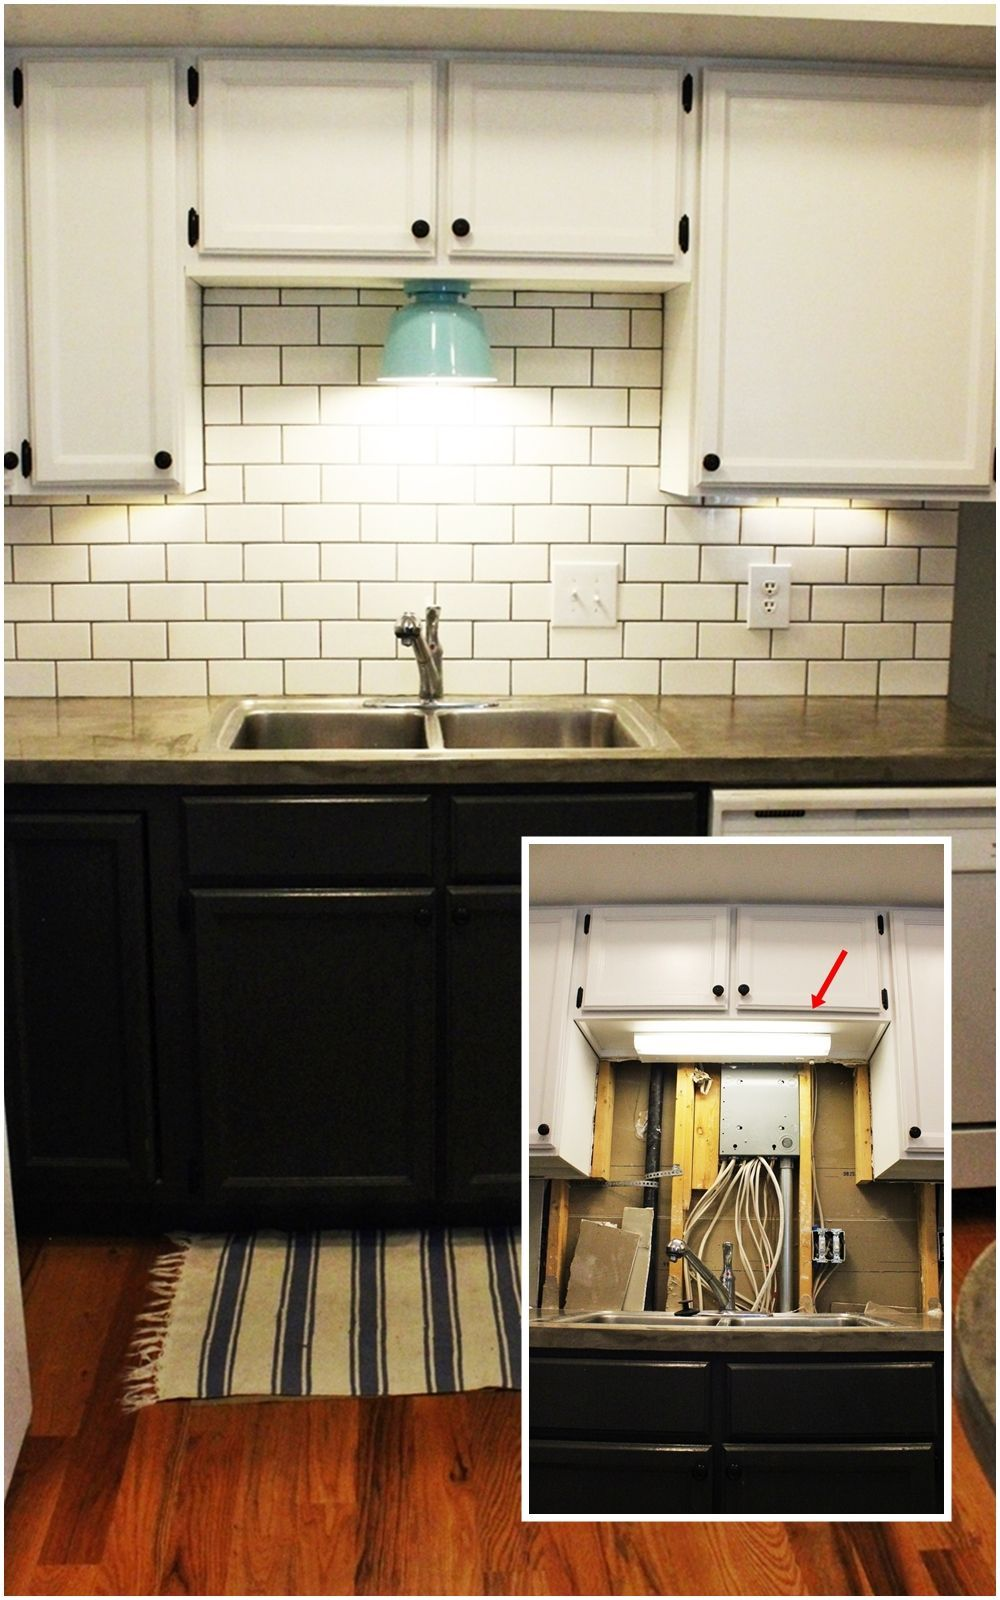 DIY Kitchen Lighting Upgrade LED Under-Cabinet Lights u0026 Above-the-Sink Light : kitchen sink light fixture - hauntedcathouse.org